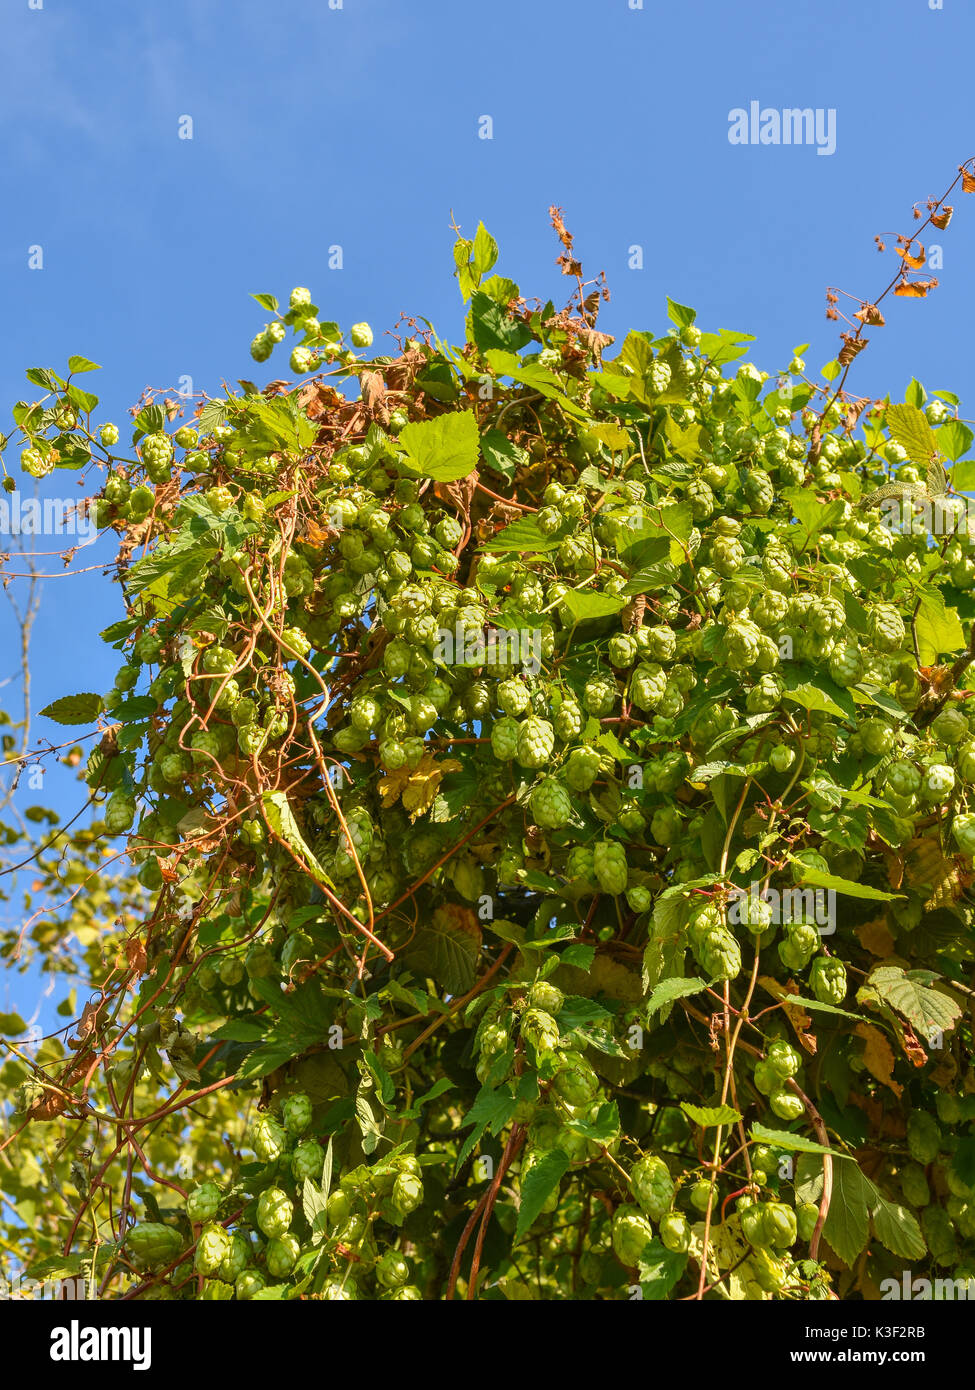 Wild Hop (Humulus lupulus) plant growing in roadside hedge - France. - Stock Image